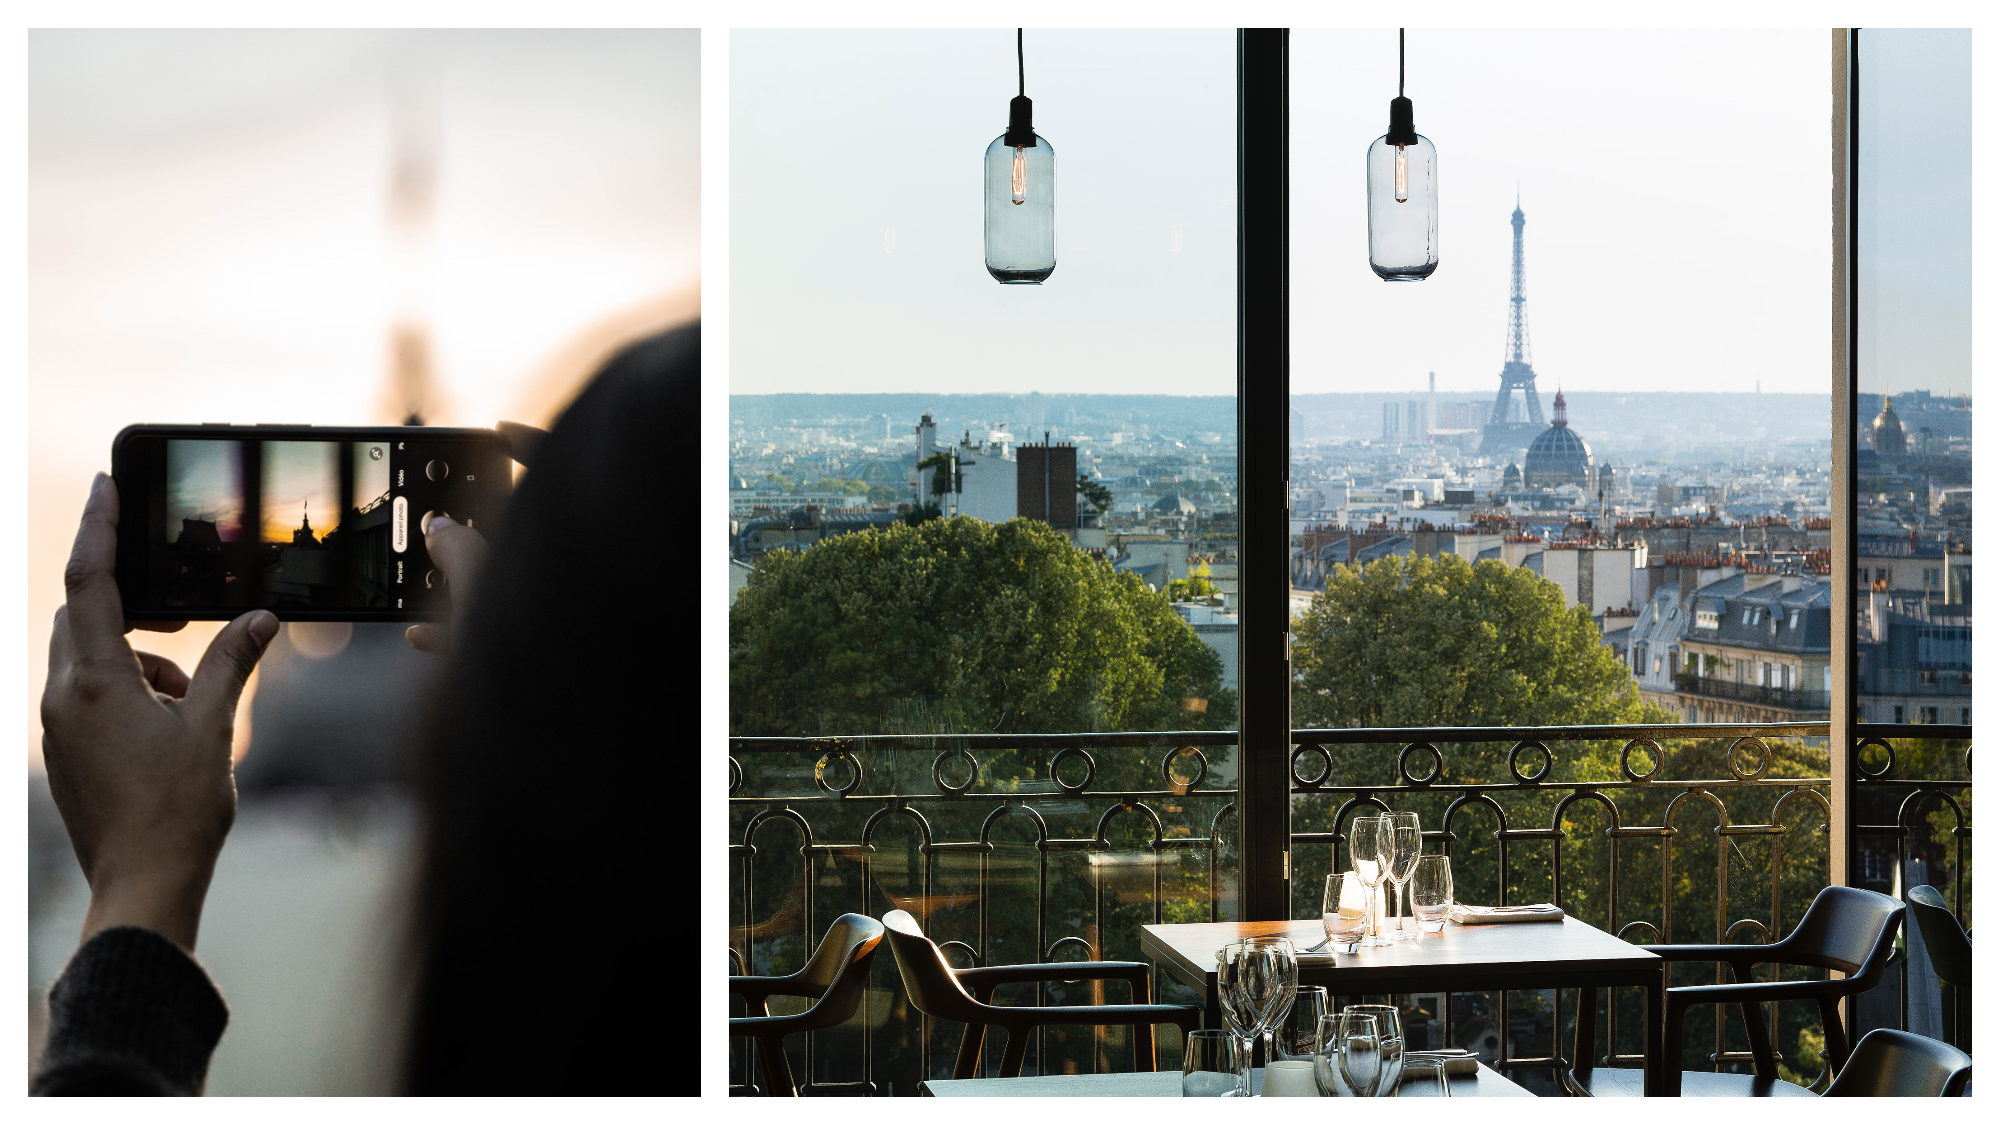 A woman taking a picture of a Paris view (left). The view of the Eiffel tower and the trees nearby from a table at the Terrass Hotel rooftop bar in Montmartre (right).